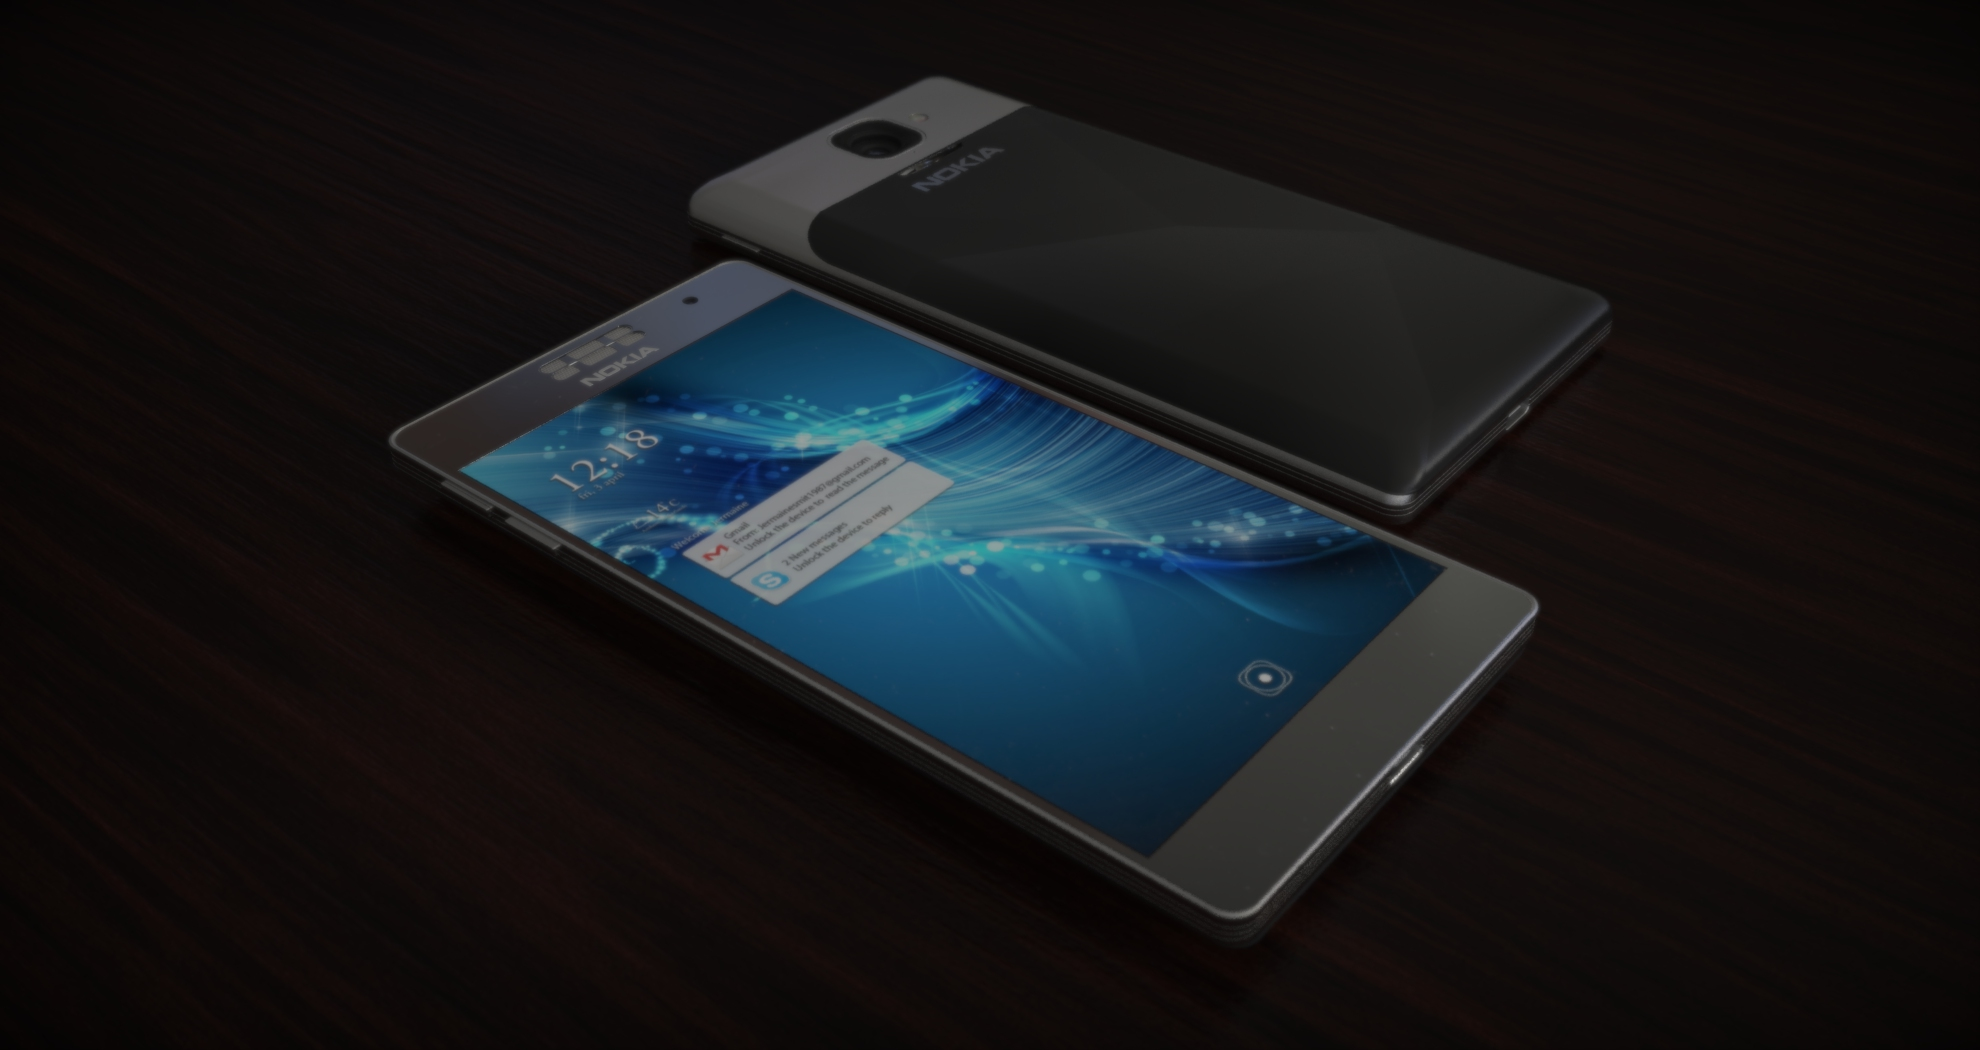 Nokia 1100 Is Back Courtesy Of A Fresh Jermaine Smit Render Video 2016 Concept 10